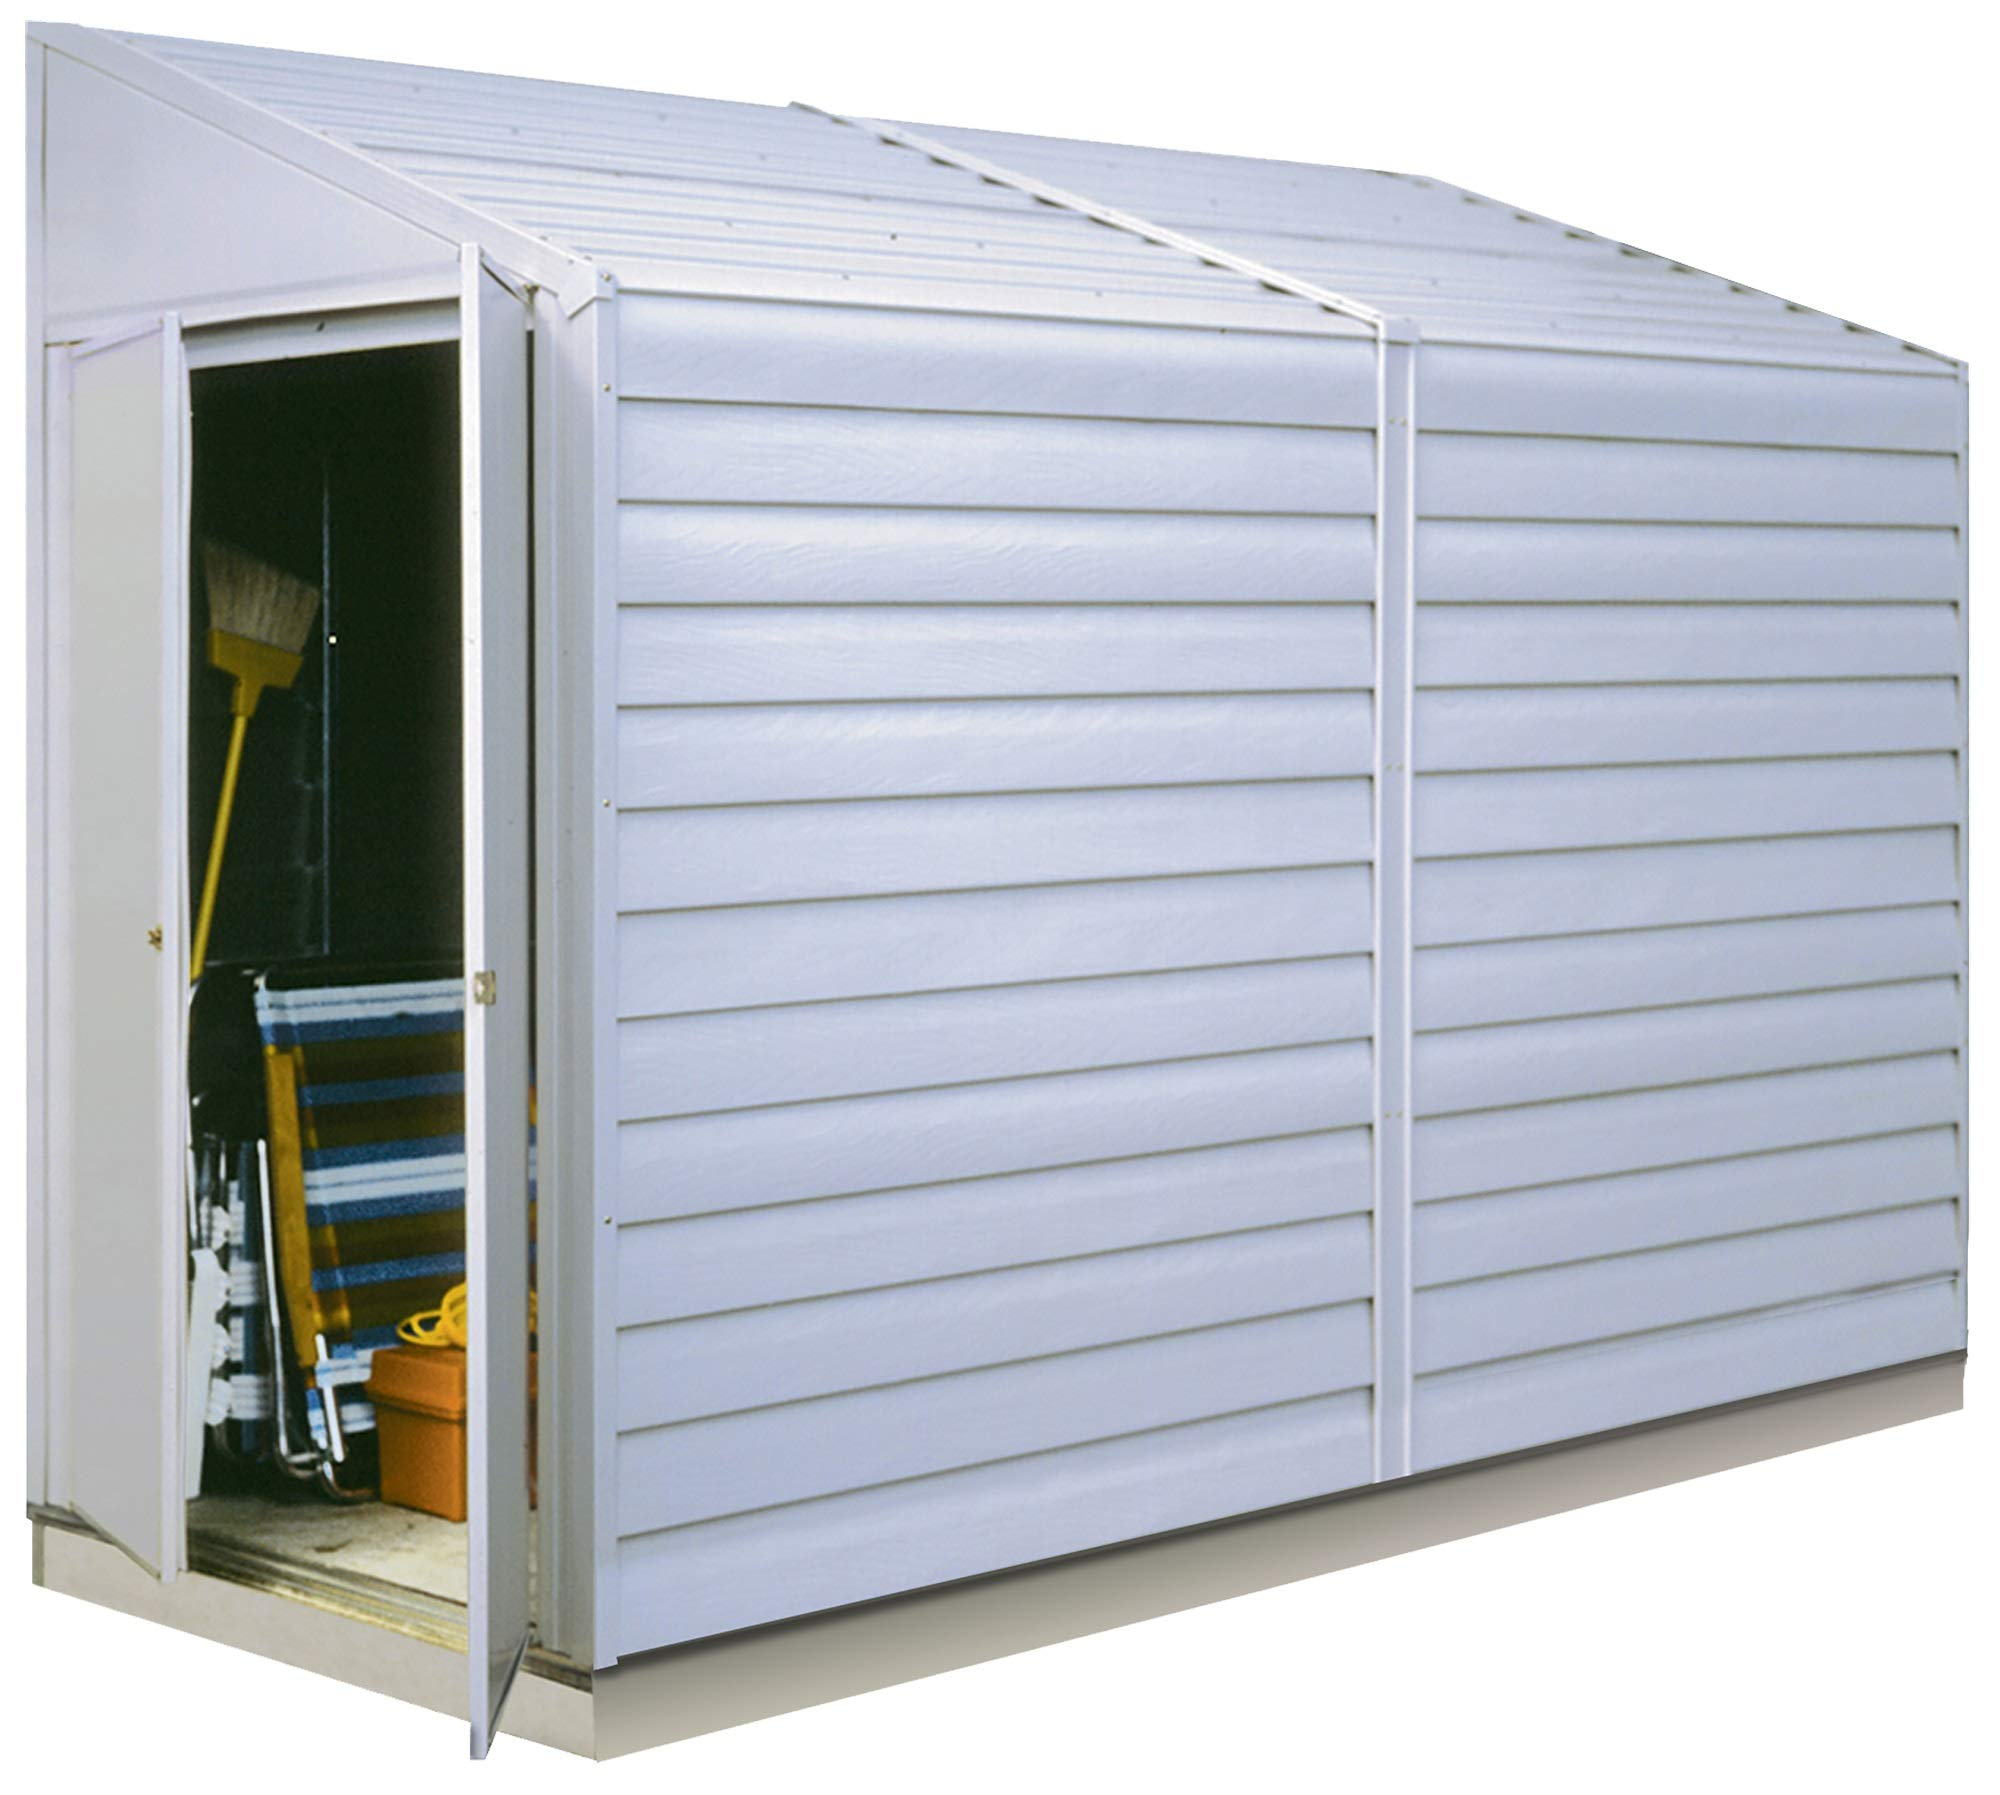 Arrow Yardsaver Compact Galvanized Steel Storage Shed with Pent Roof, 4' x 10' by Arrow